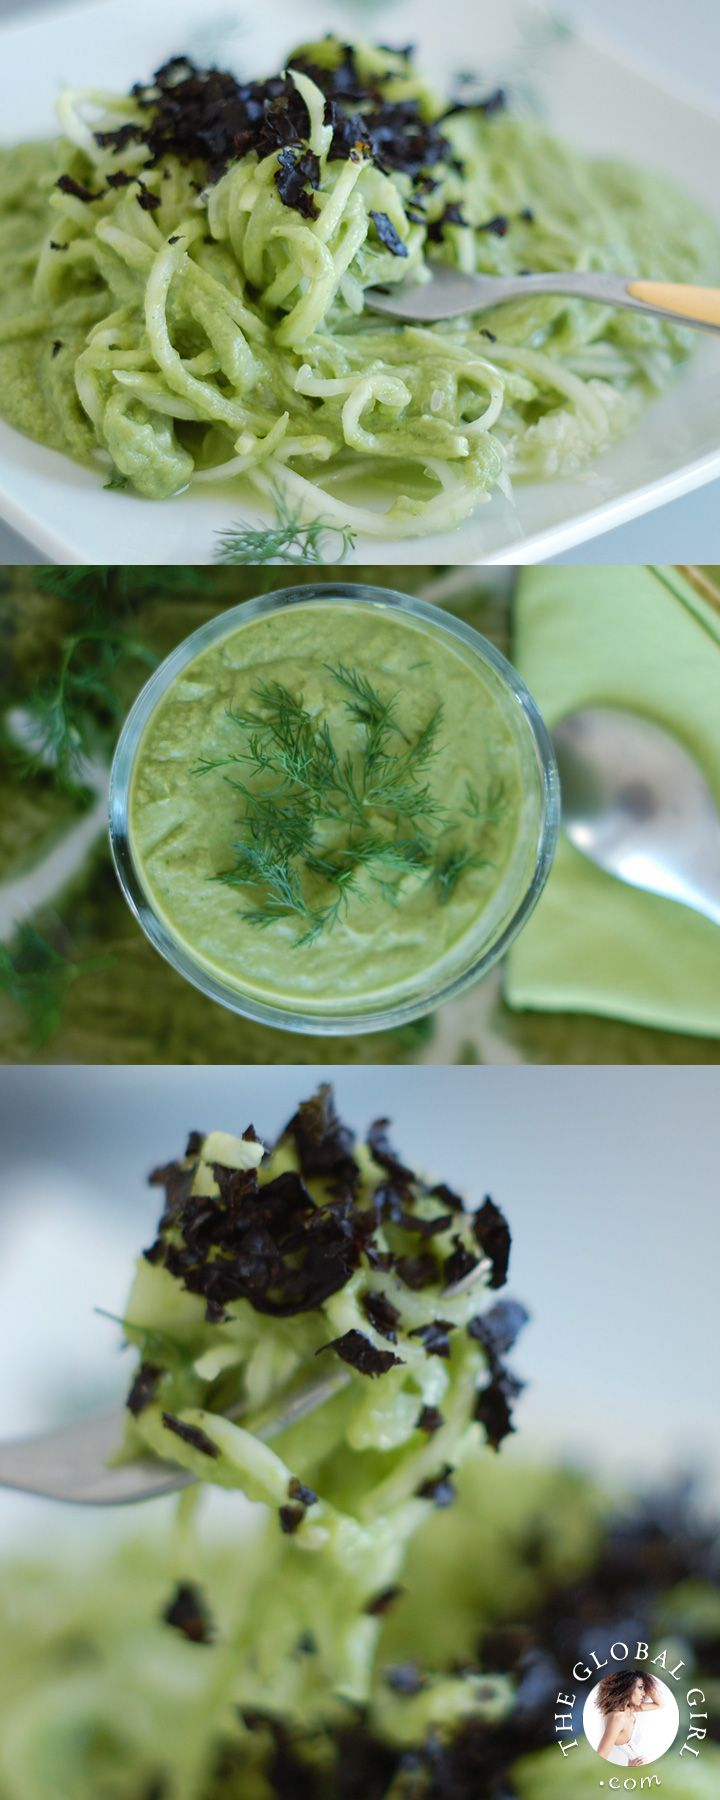 The Global Girl Raw Food Recipes: Cucumber Pasta with Creamy Avocado Sauce and Nori Flakes. Perfect balance of light, refreshing, cleansing and filling. Plus it's an avocado extravaganza!